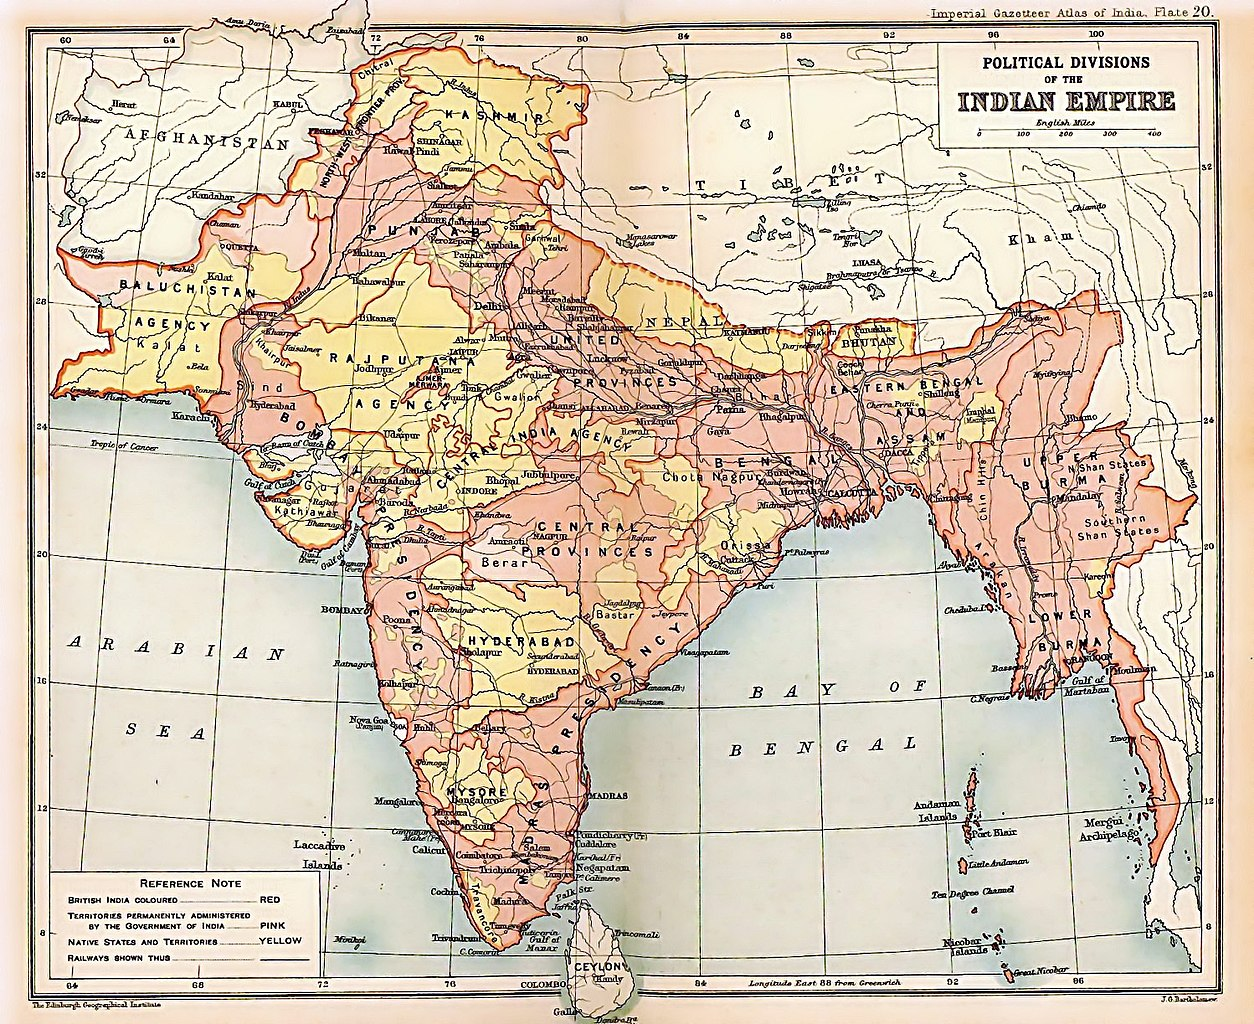 FileBritish Indian Empire 1909 Imperial Gazetteer of Indiajpg